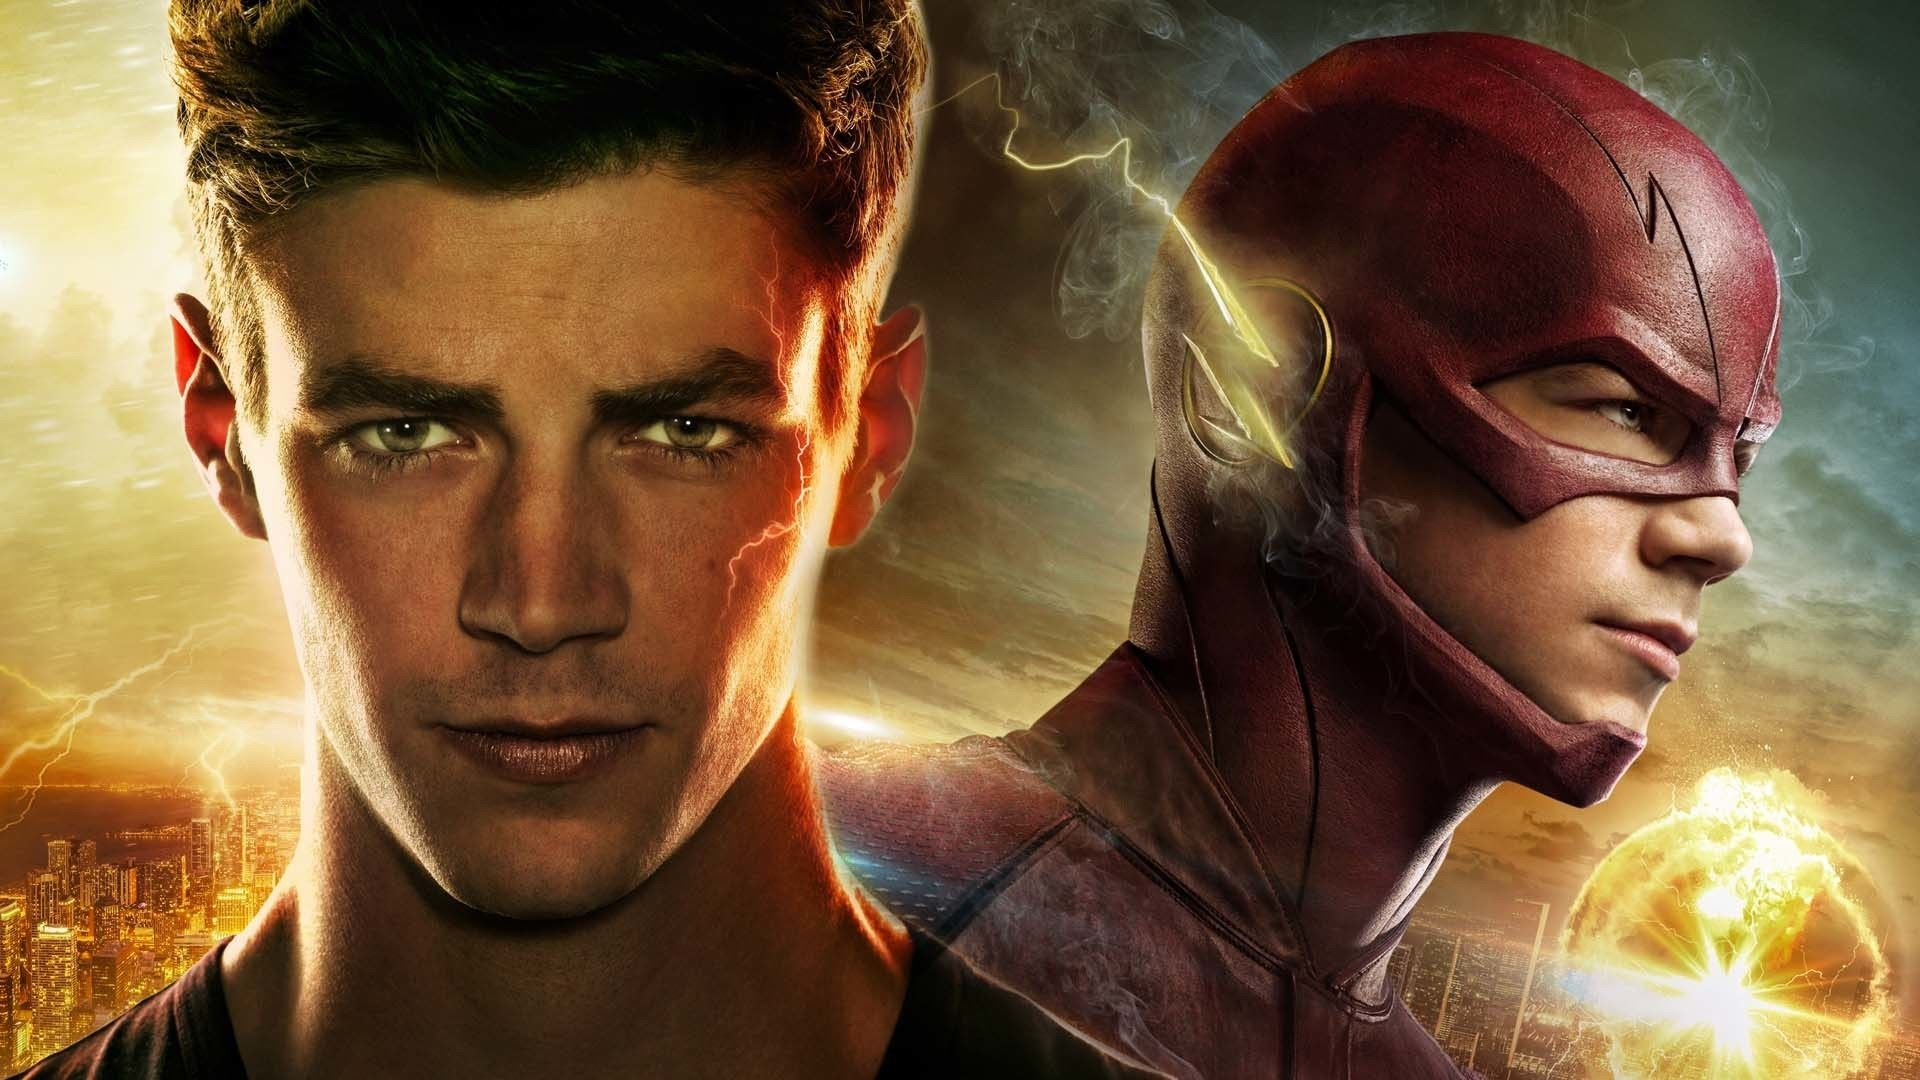 the flash poster qhd.jpg